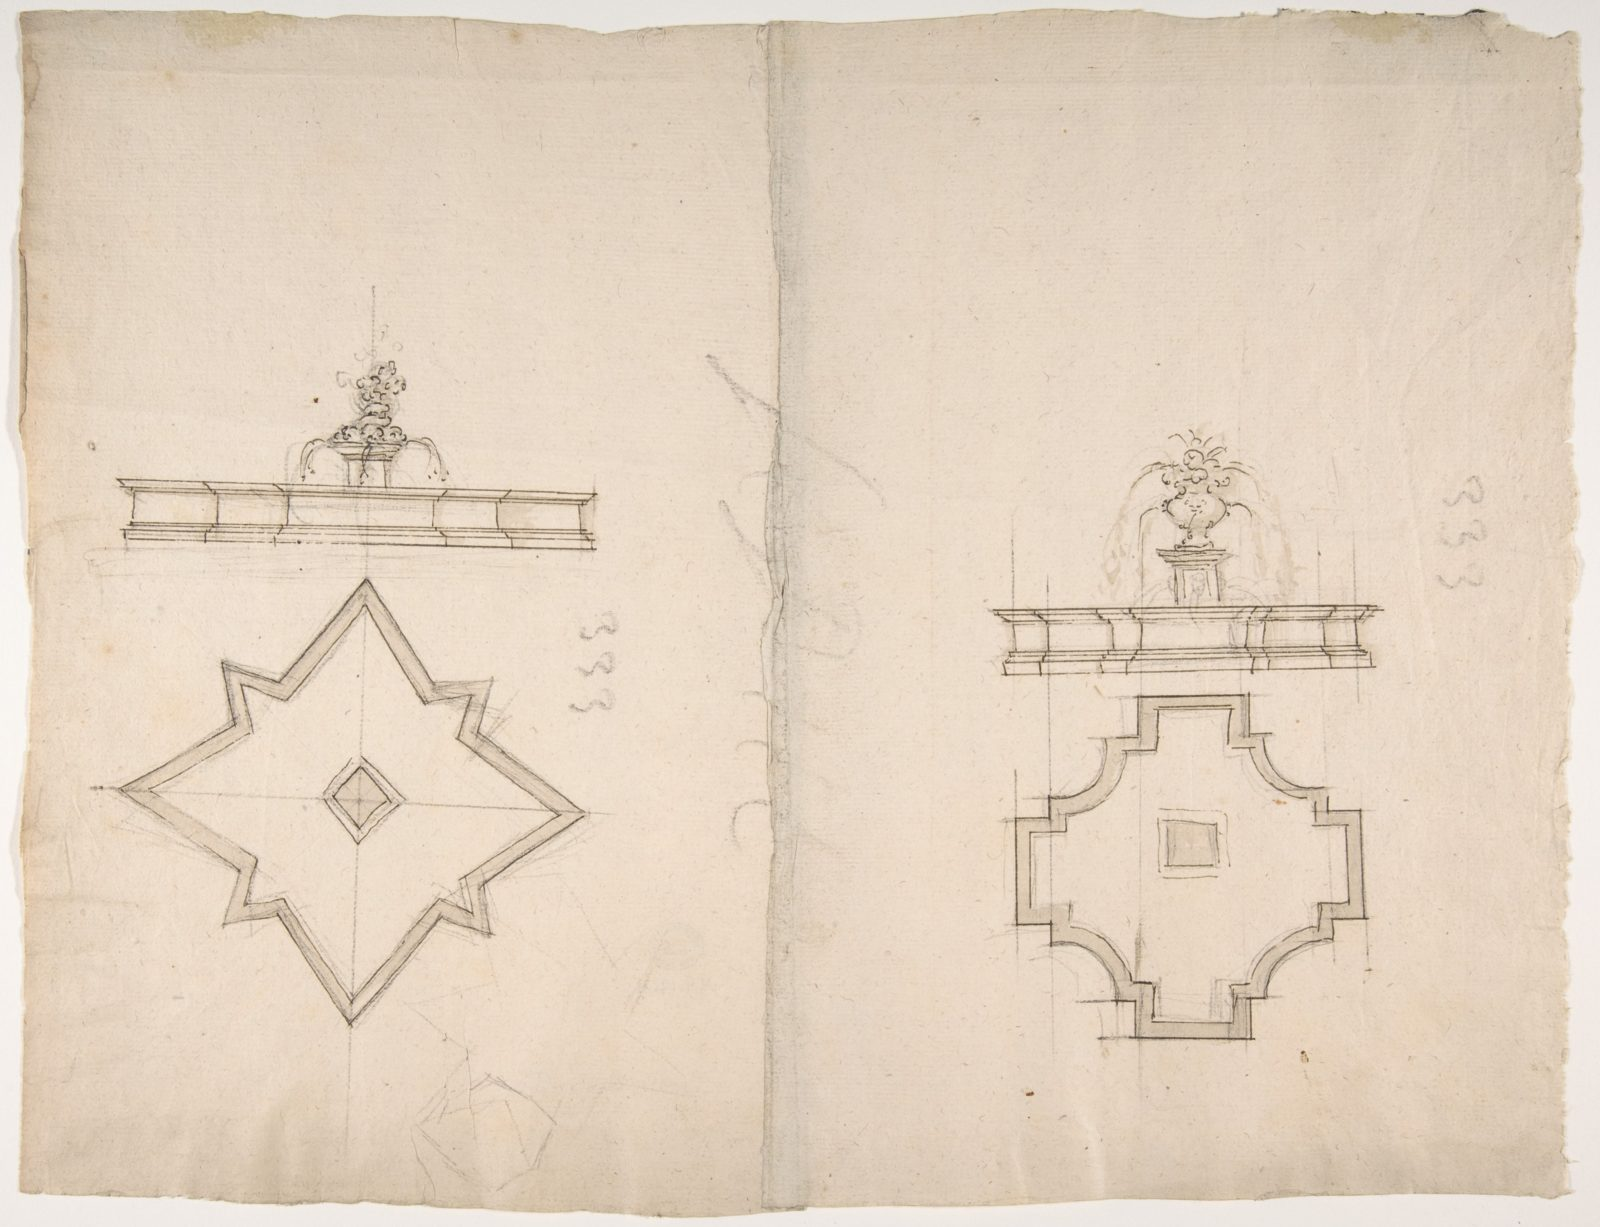 Two Plans and Elevations for Fountains